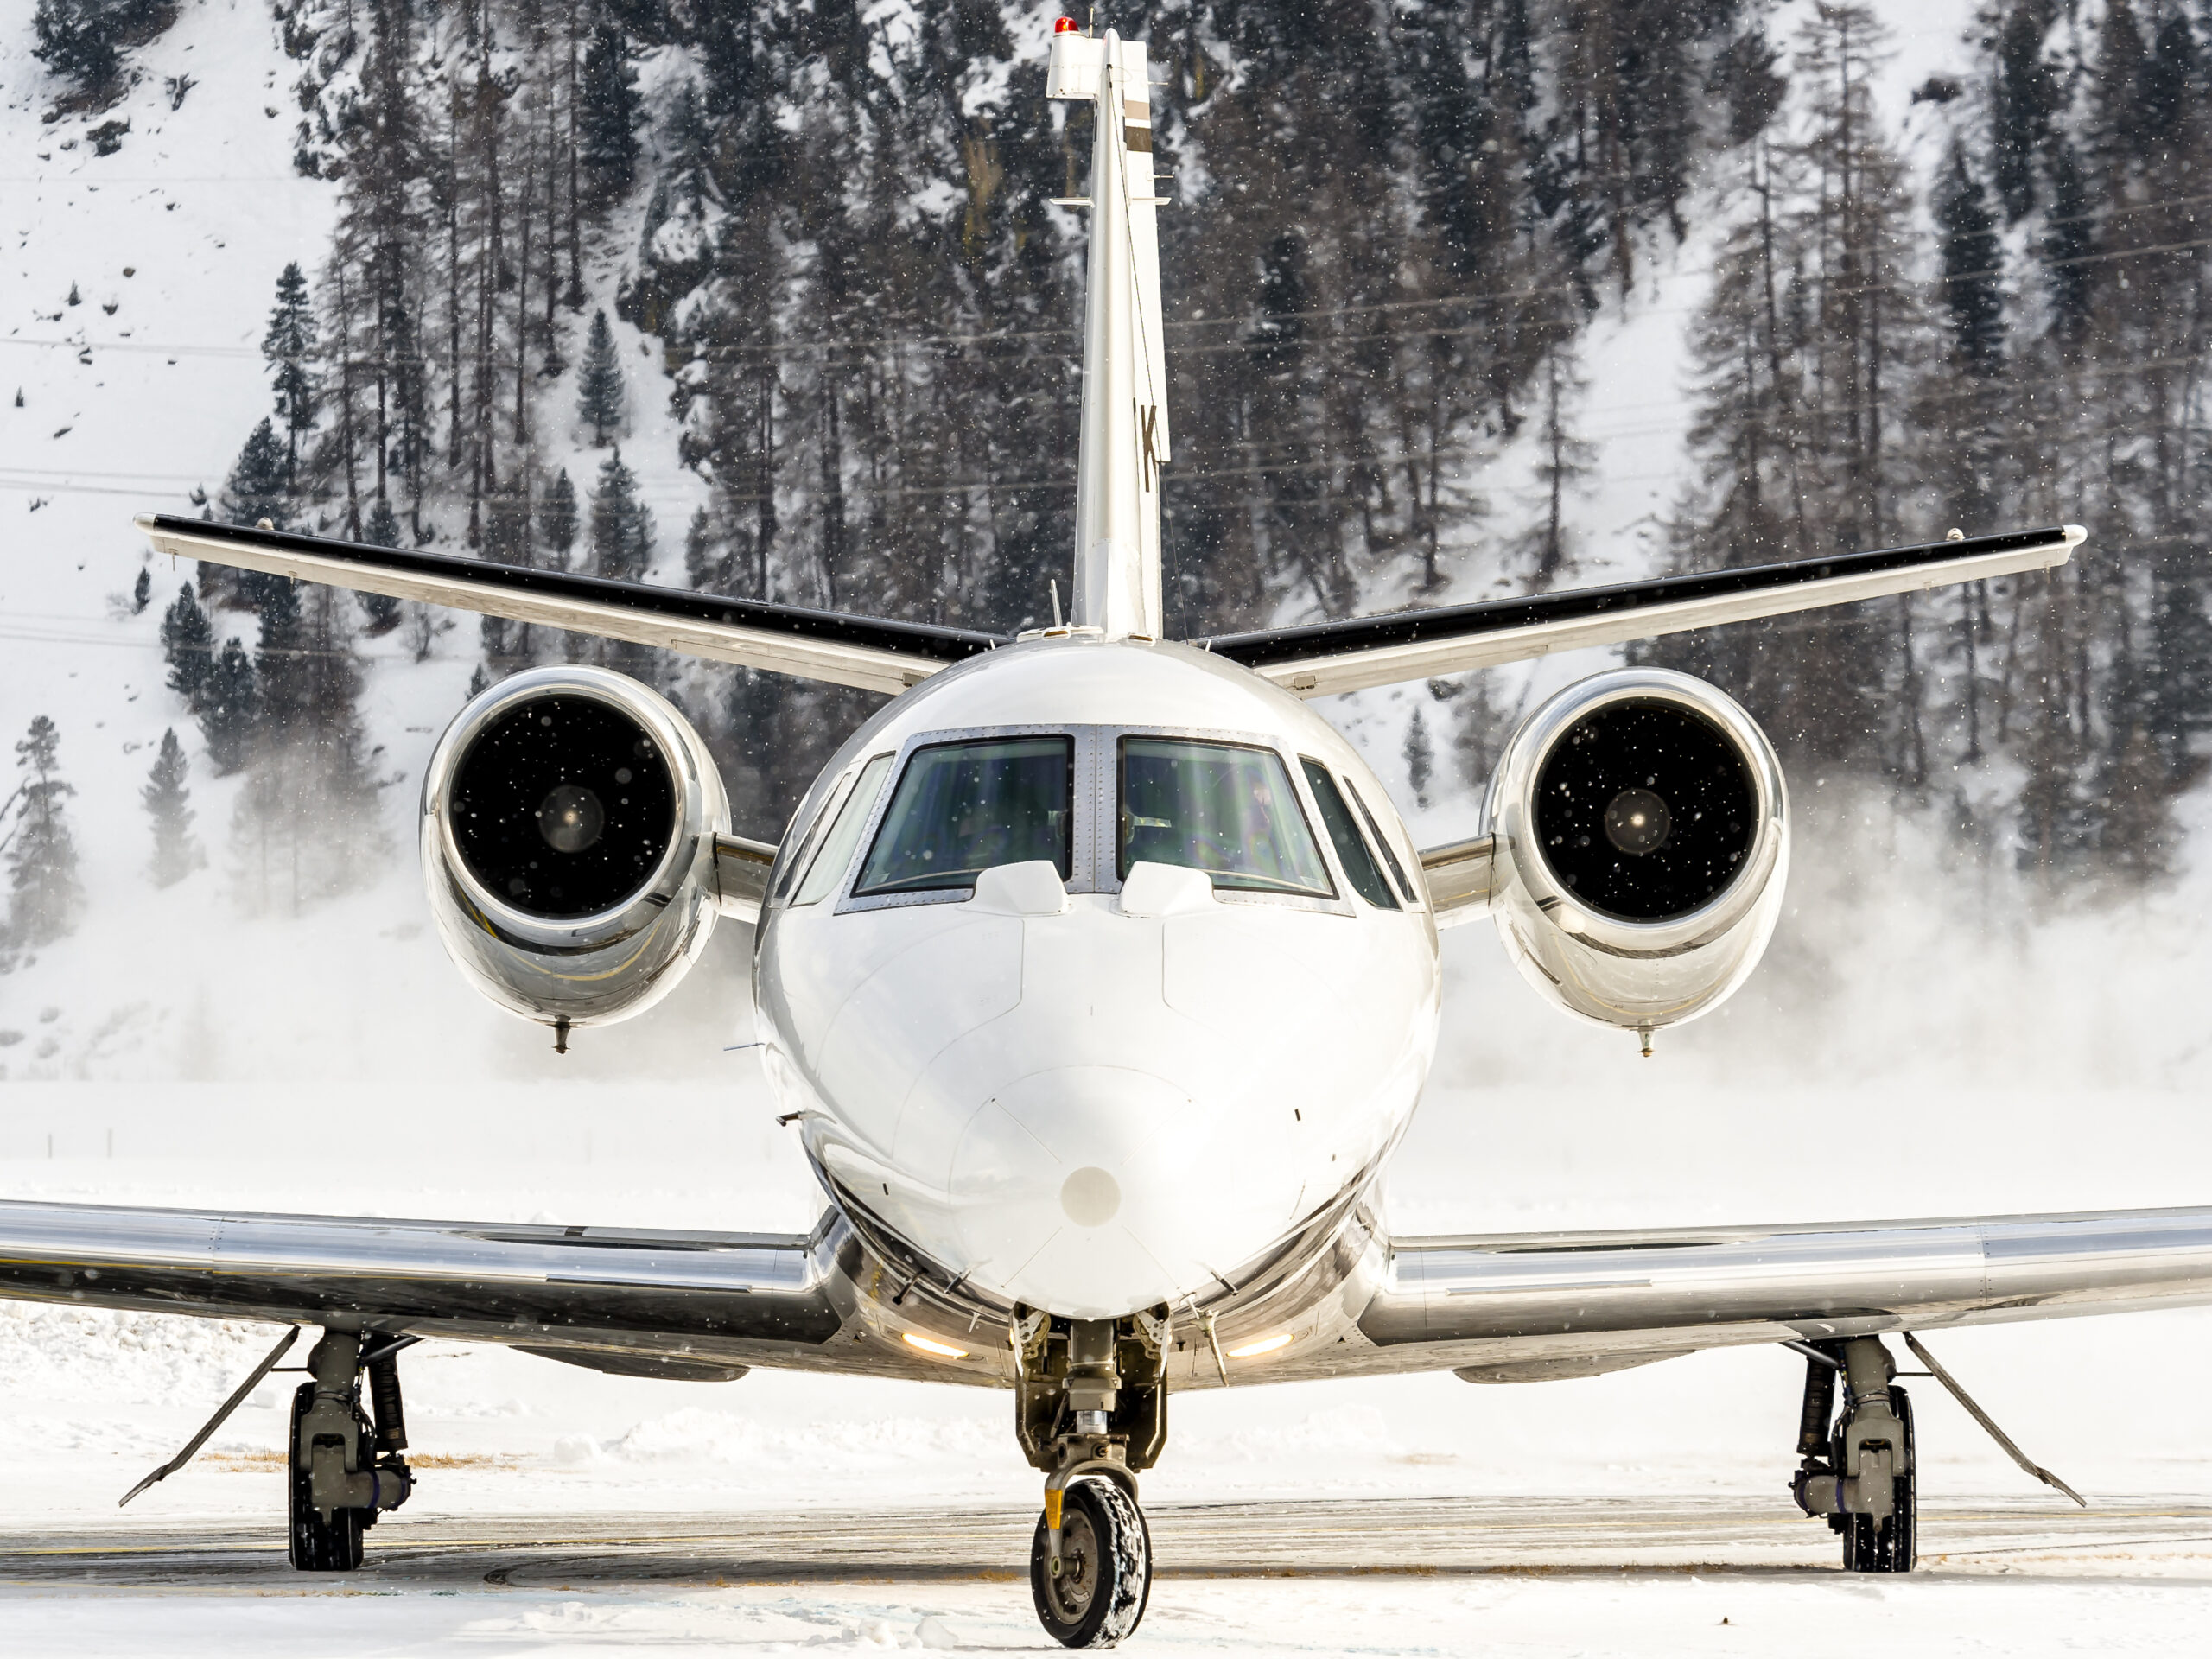 Private Jet landing in snow Steamboat